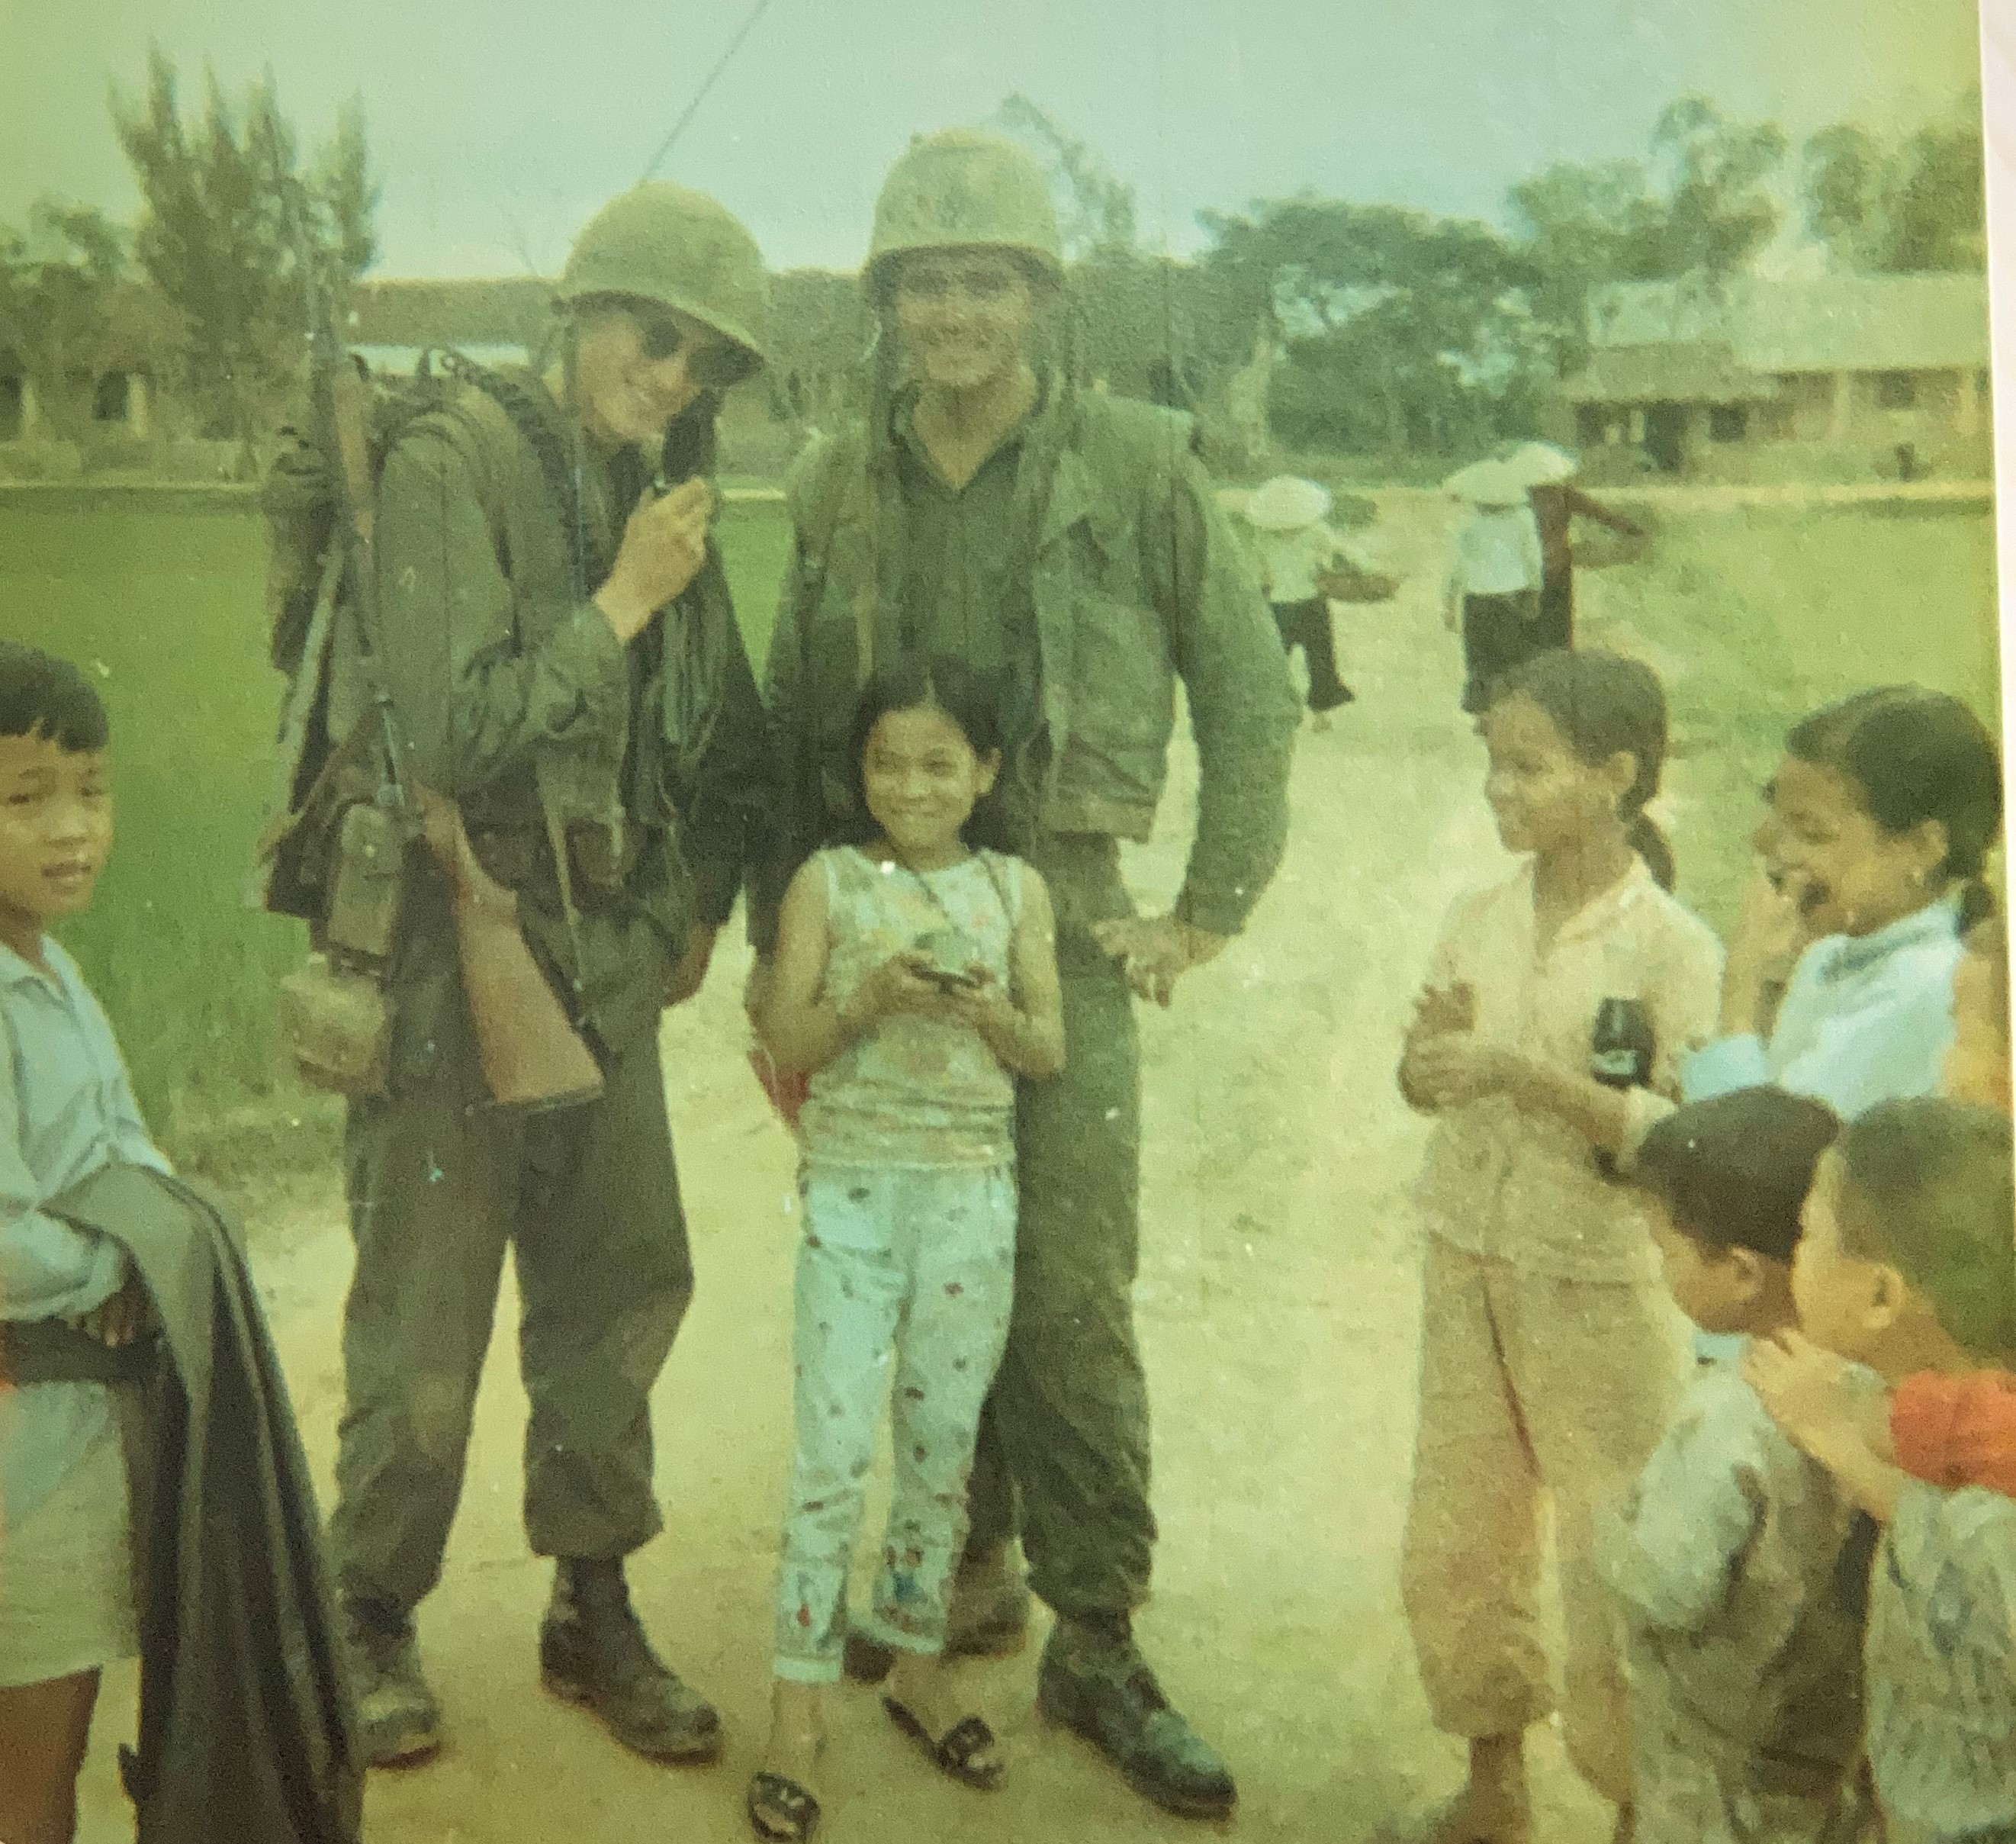 Color photo of two soldiers and several children in Vietnam